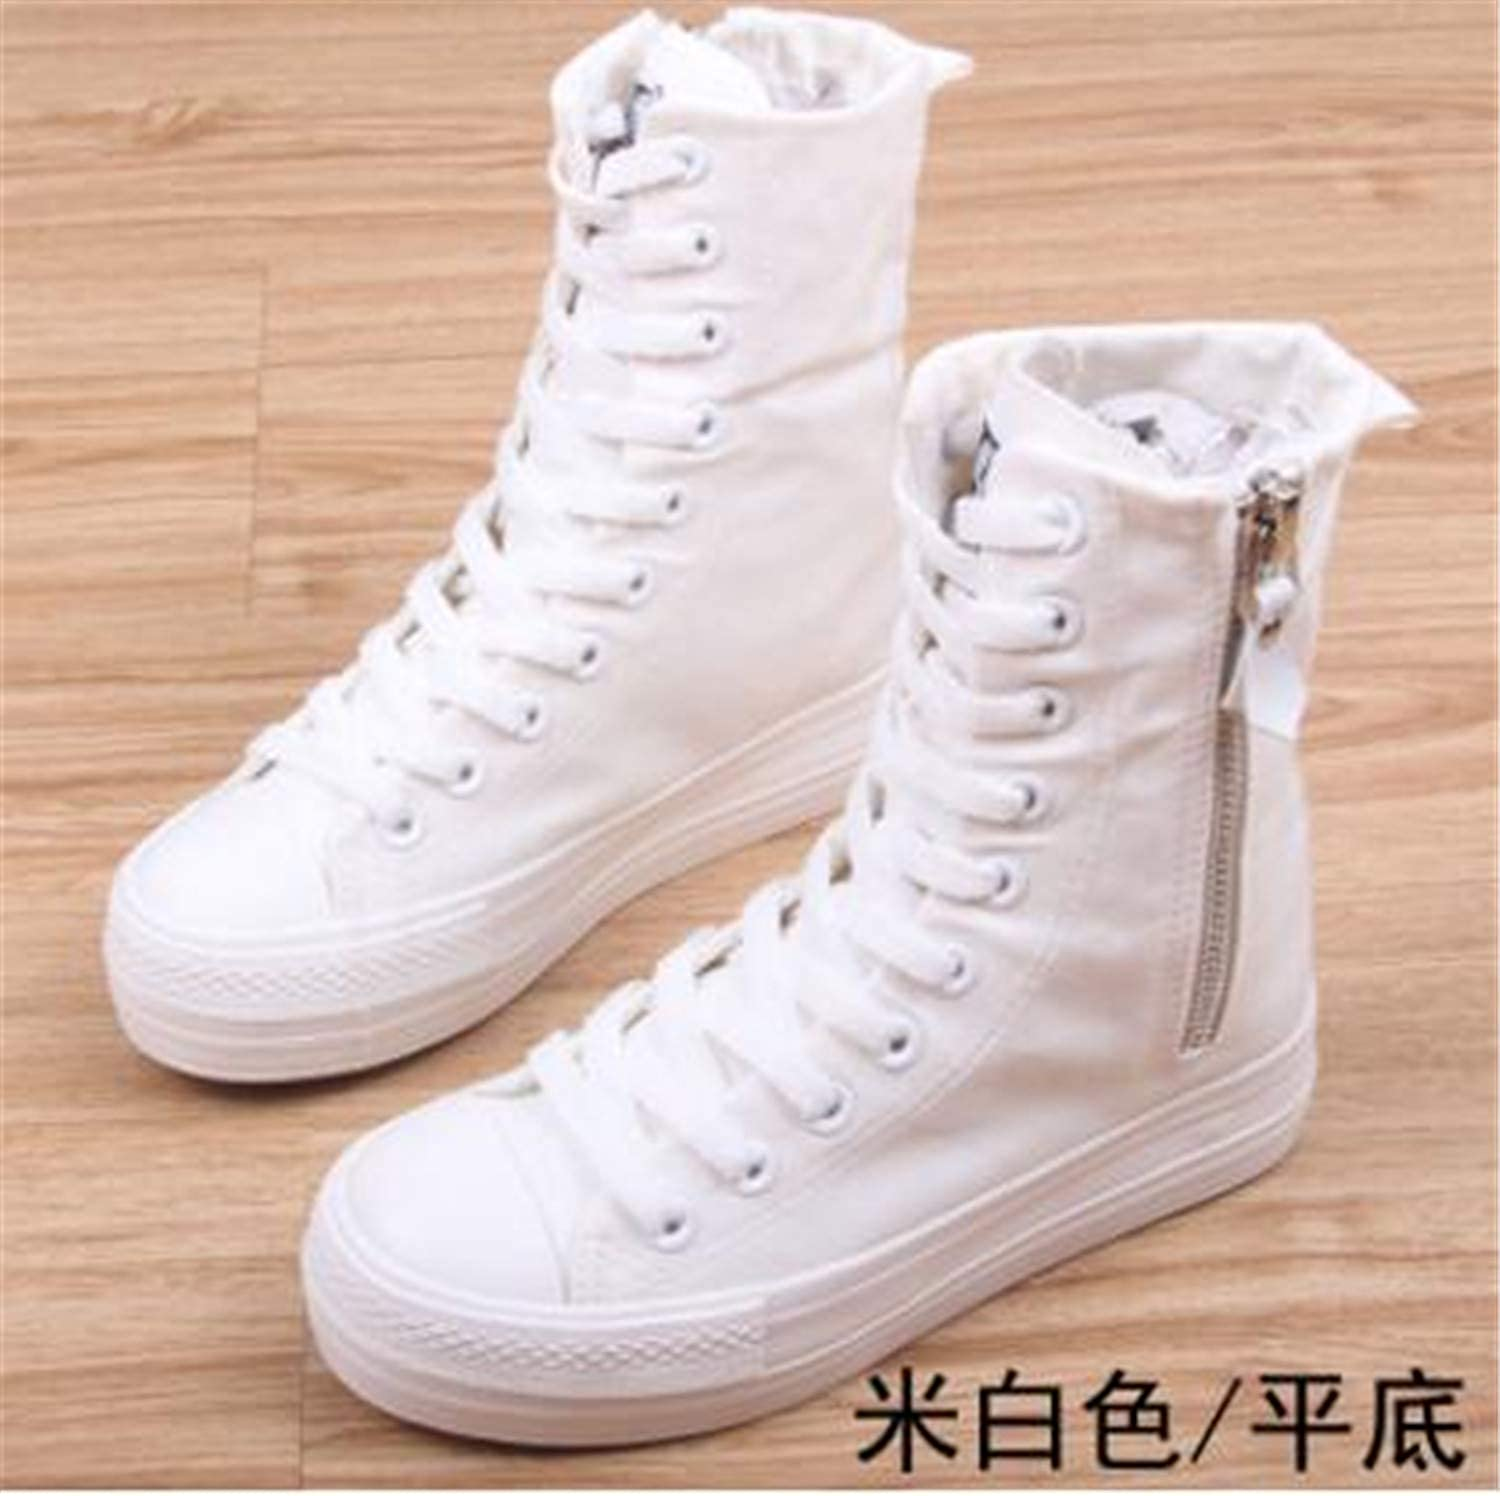 HCHBE& 2018 New Spring Autumn high top Platform Girl's Canvas shoes Zipper Fashion Women Casual shoes Female Leisure shoes Sneakers color 5 6.5